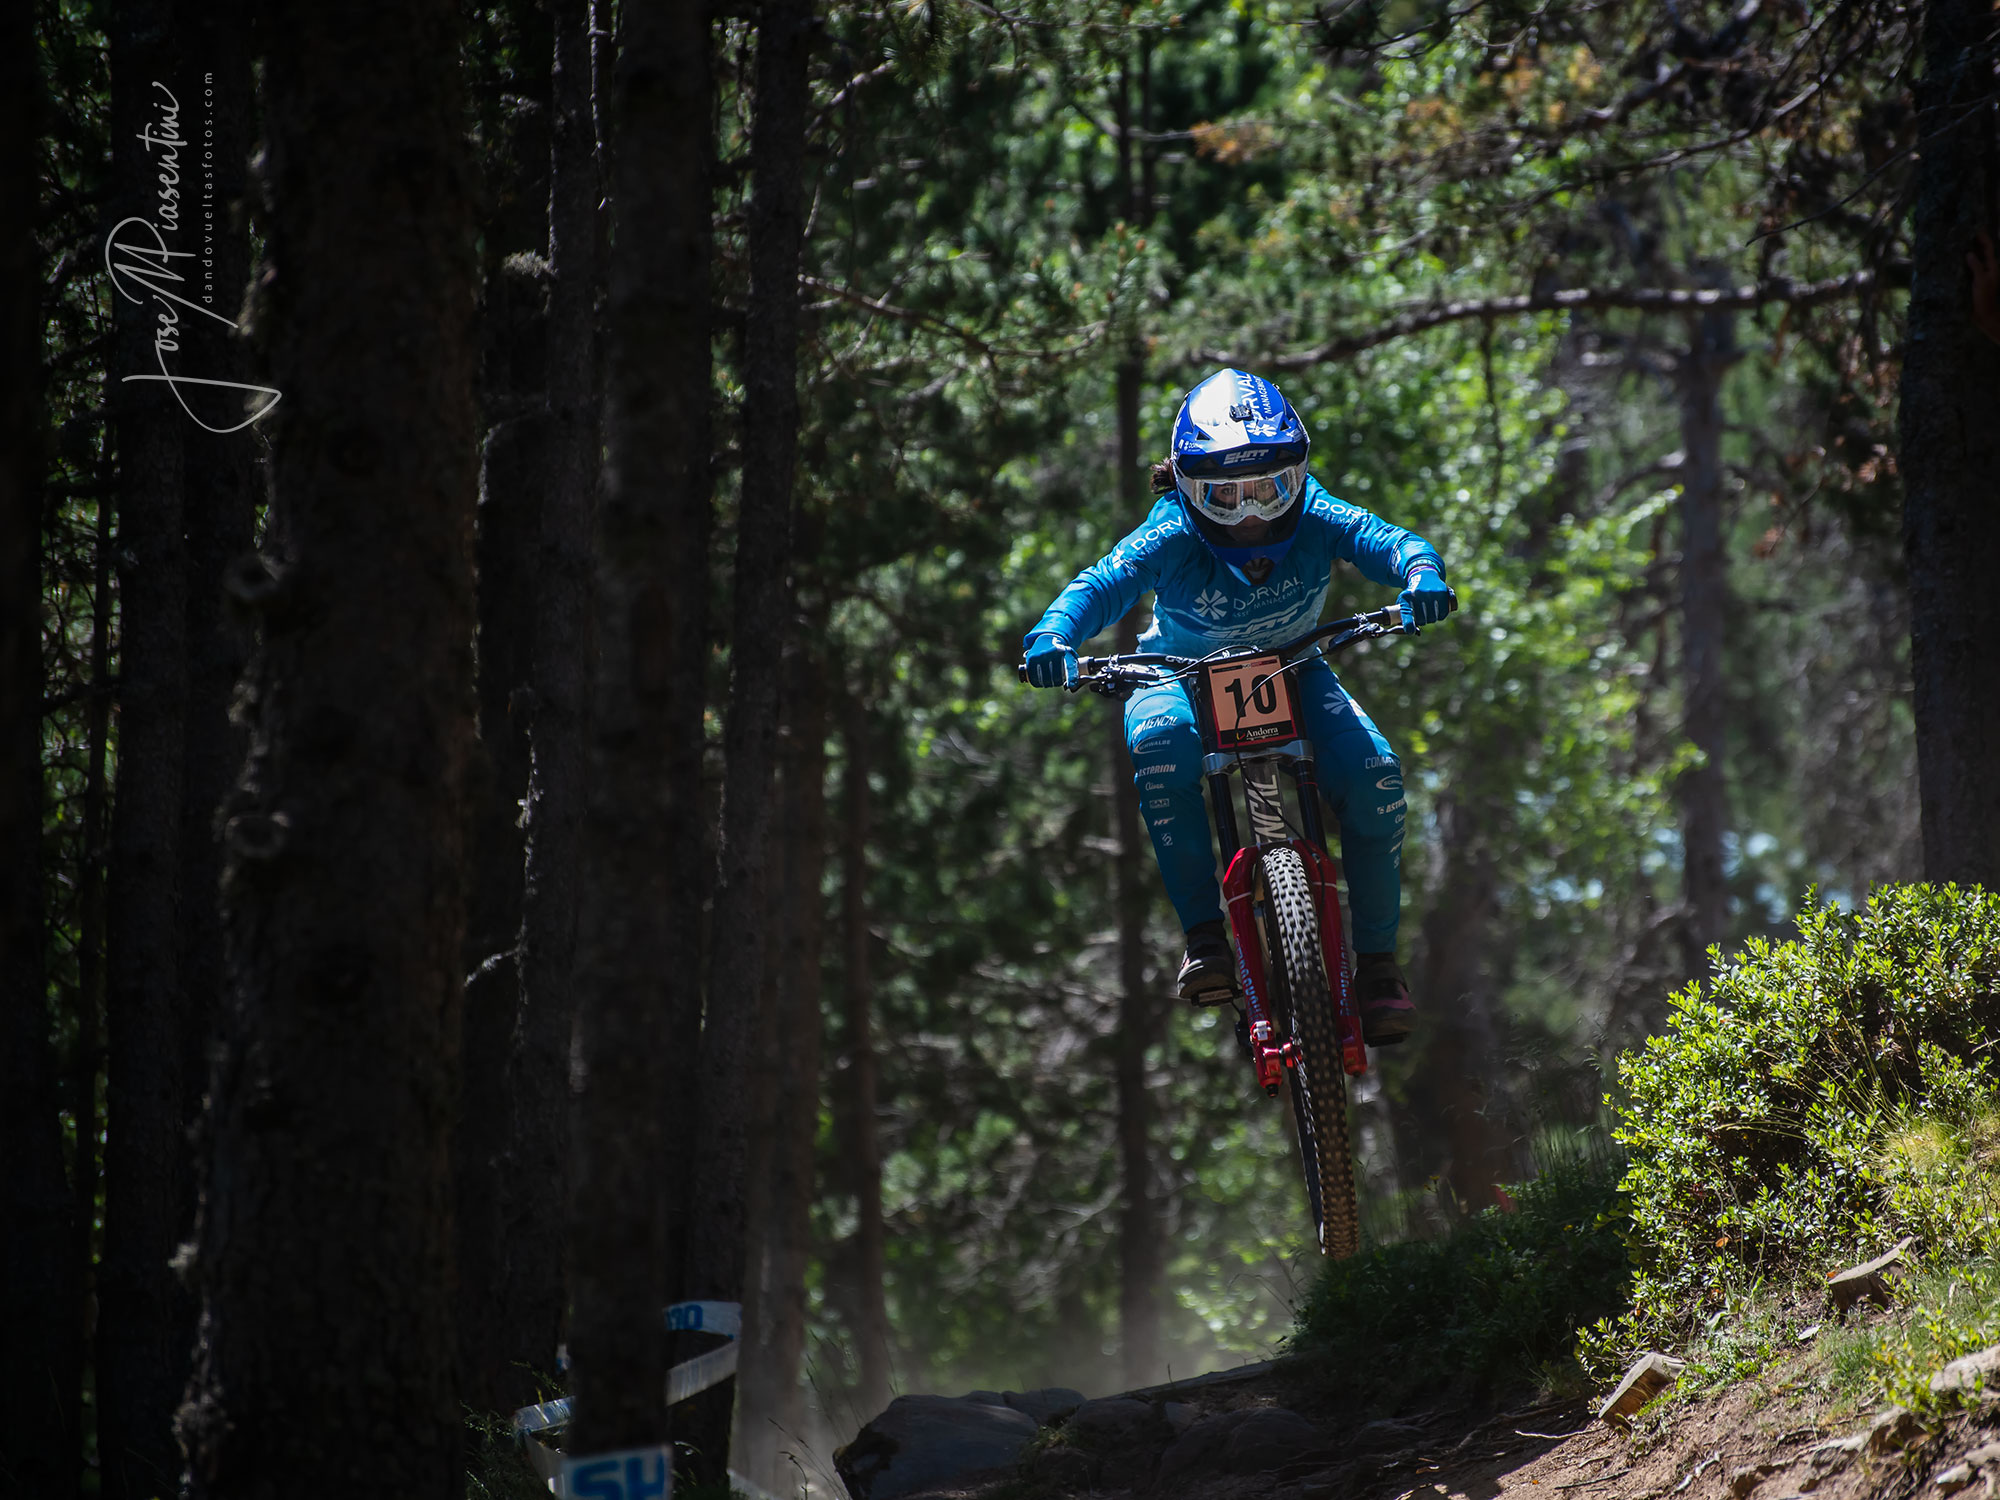 Marine Cabirou Vallnord world cup